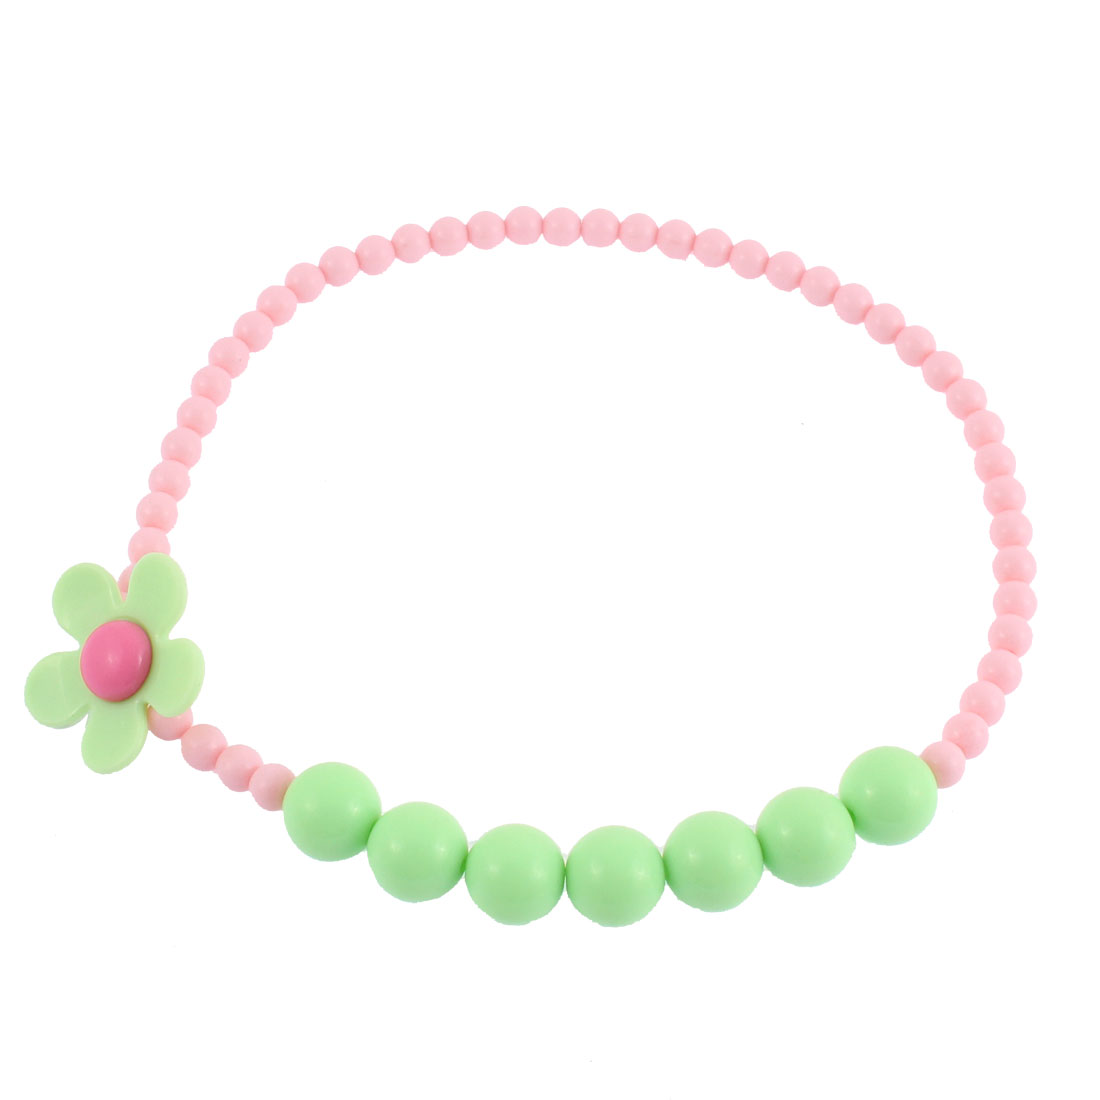 Woman Lady Plastic Flower Decor Bead Ball Chain Stretchy Necklace Pink Green